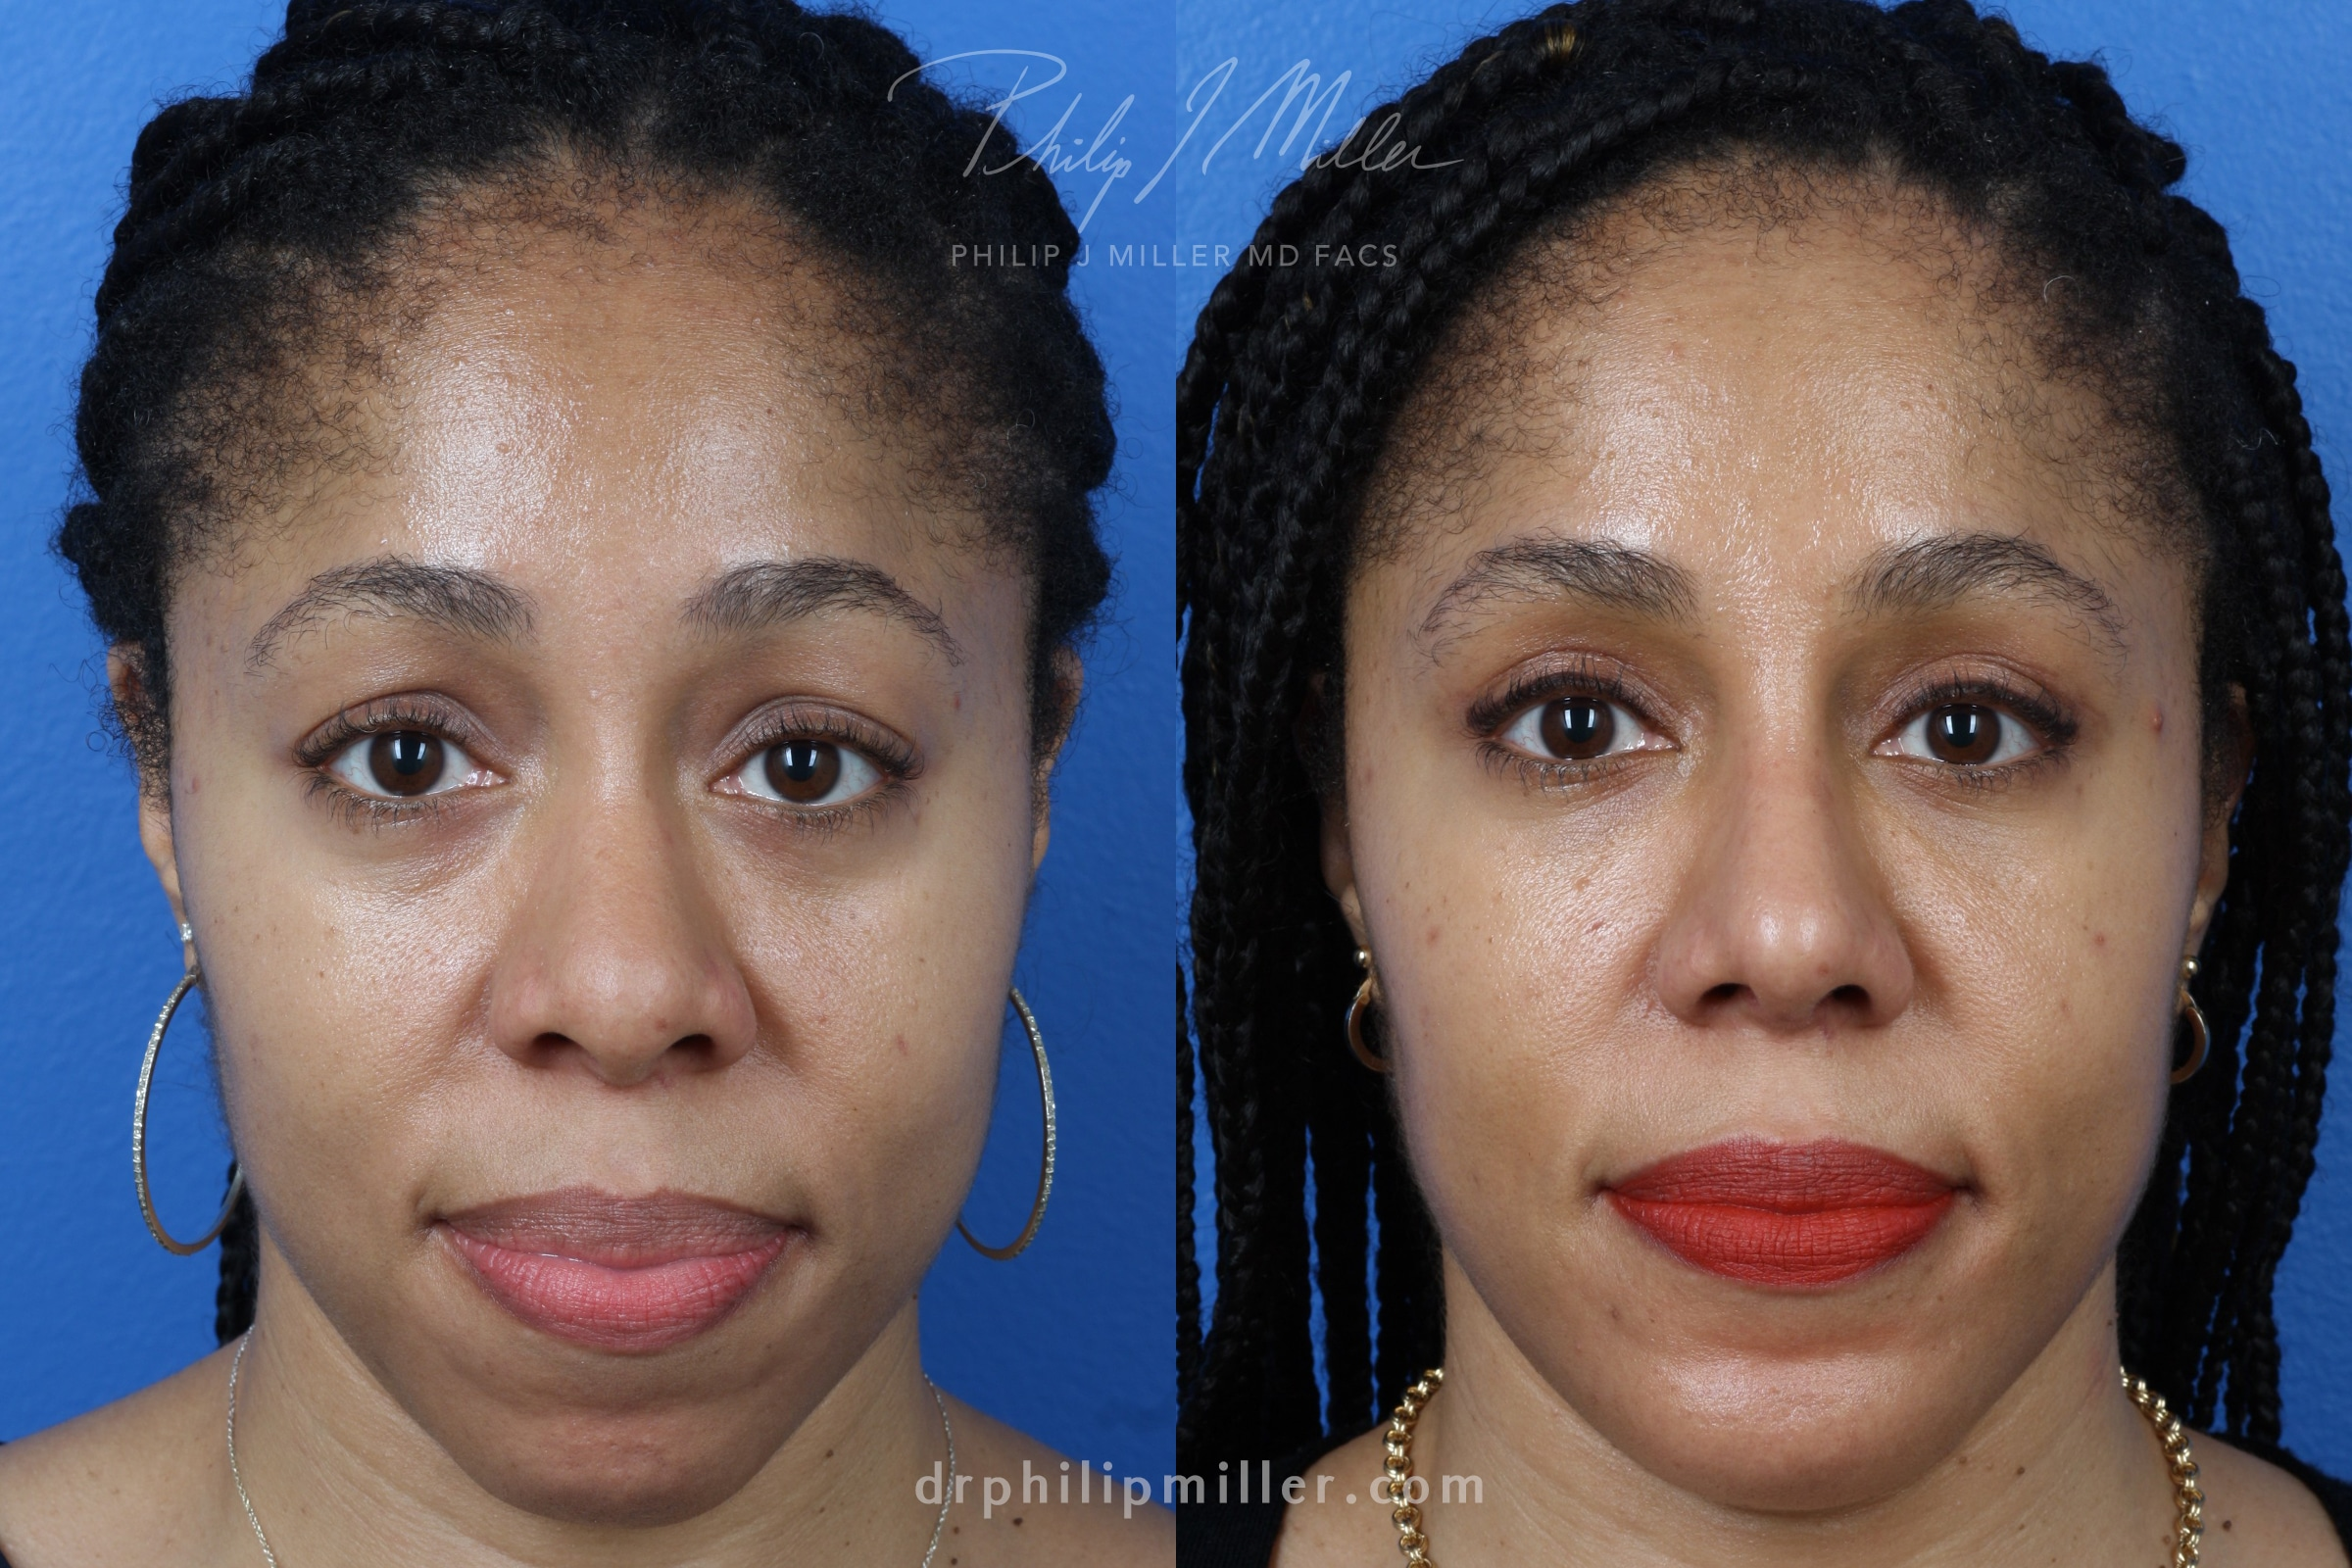 Rhinoplasty, upper blepharoplasty, chin implant, and fat grafting for facial contouring of a female patient by Dr. Miller. Treatments bring facial features in proportion to improve the facial contour.